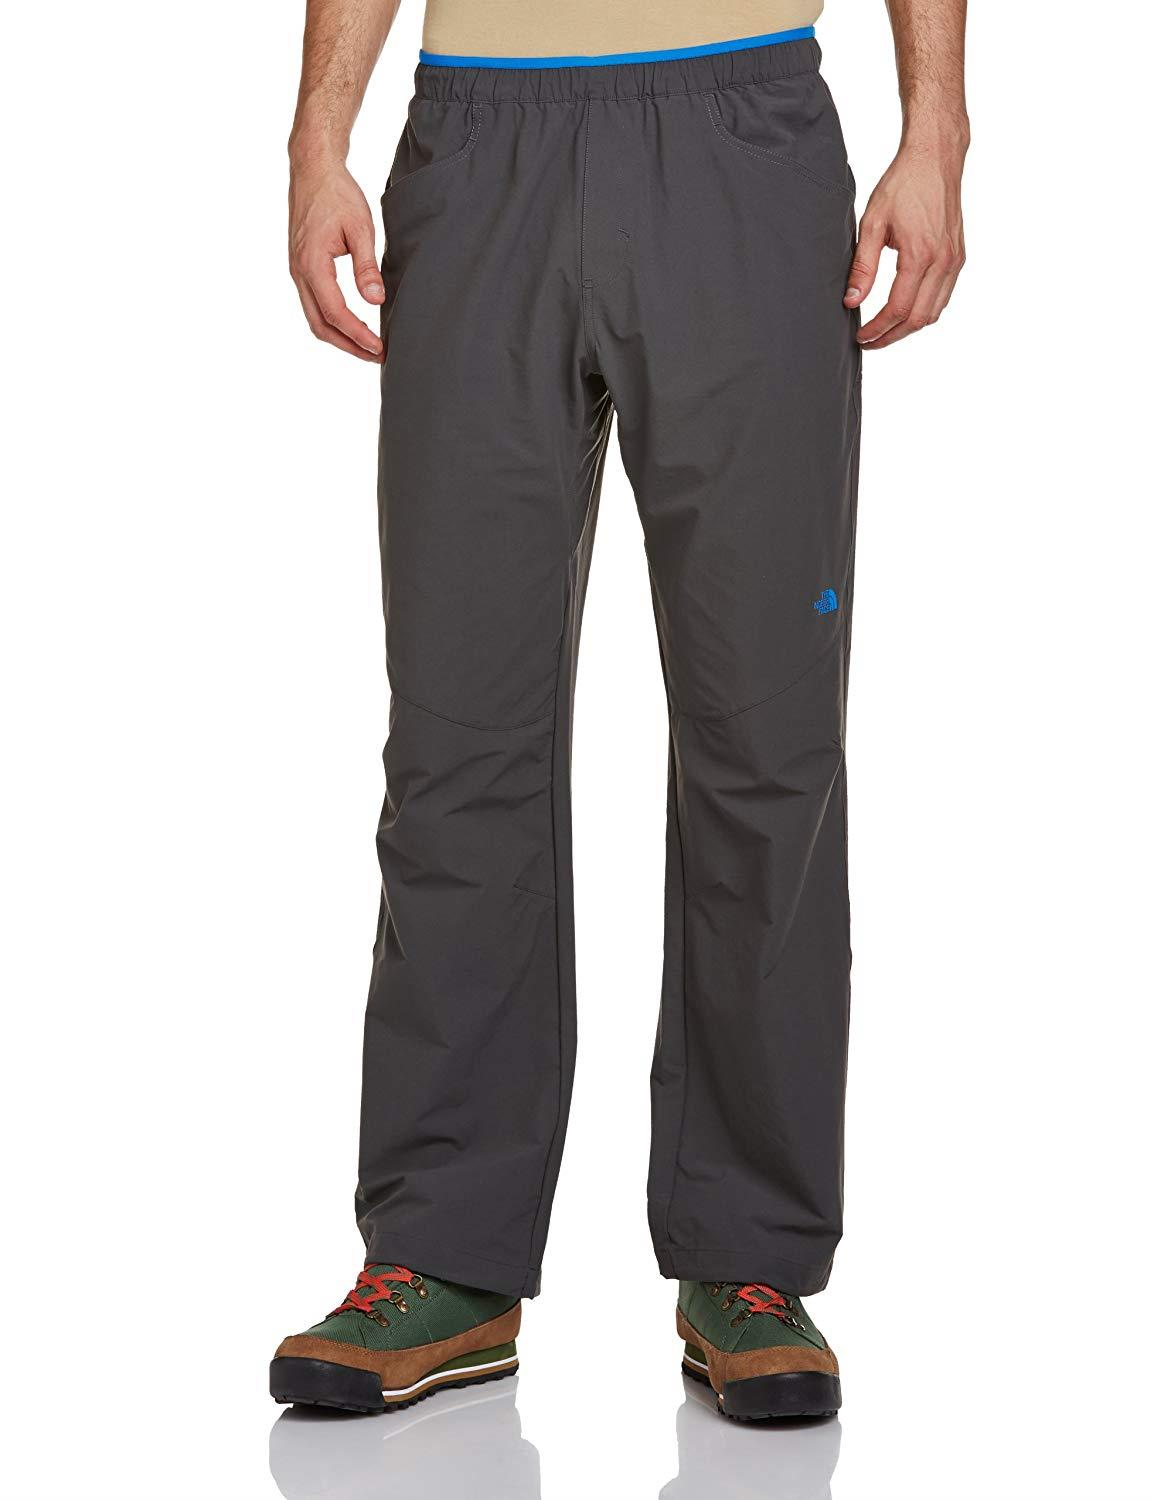 The North Face Dyno Koyu Gri Erkek Pantolonu T0A3J50C5